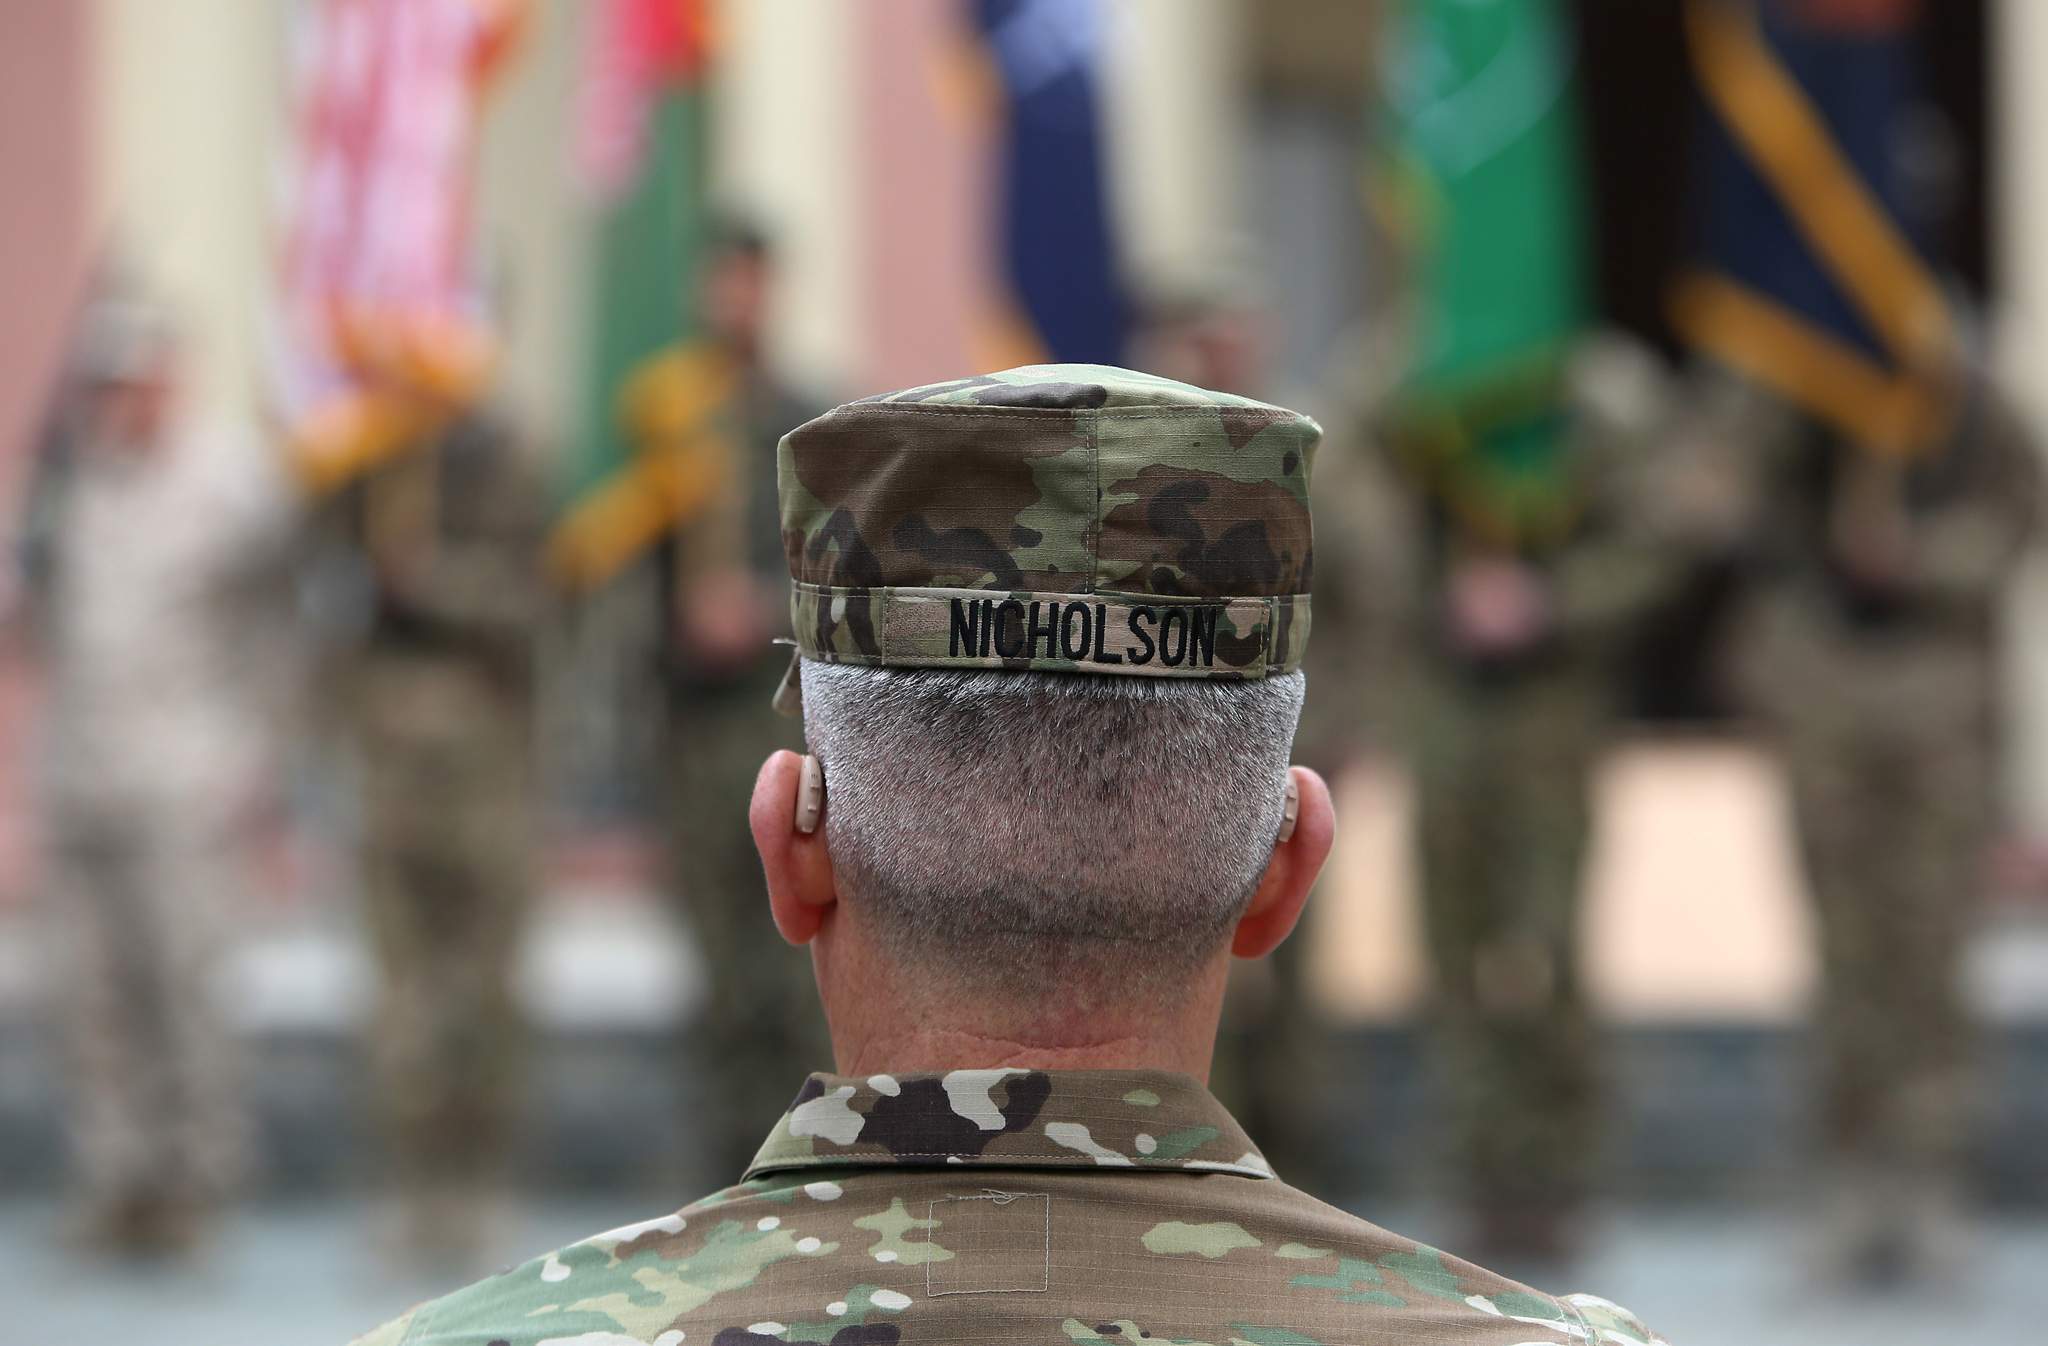 New Commander of Resolute Support forces and United States forces in Afghanistan, U.S. Army General John Nicholson, attends a change of command ceremony in Resolute Support headquarters in Kabul, Afghanistan, Wednesday, March 2, 2016. (AP Photo/Rahmat Gul)